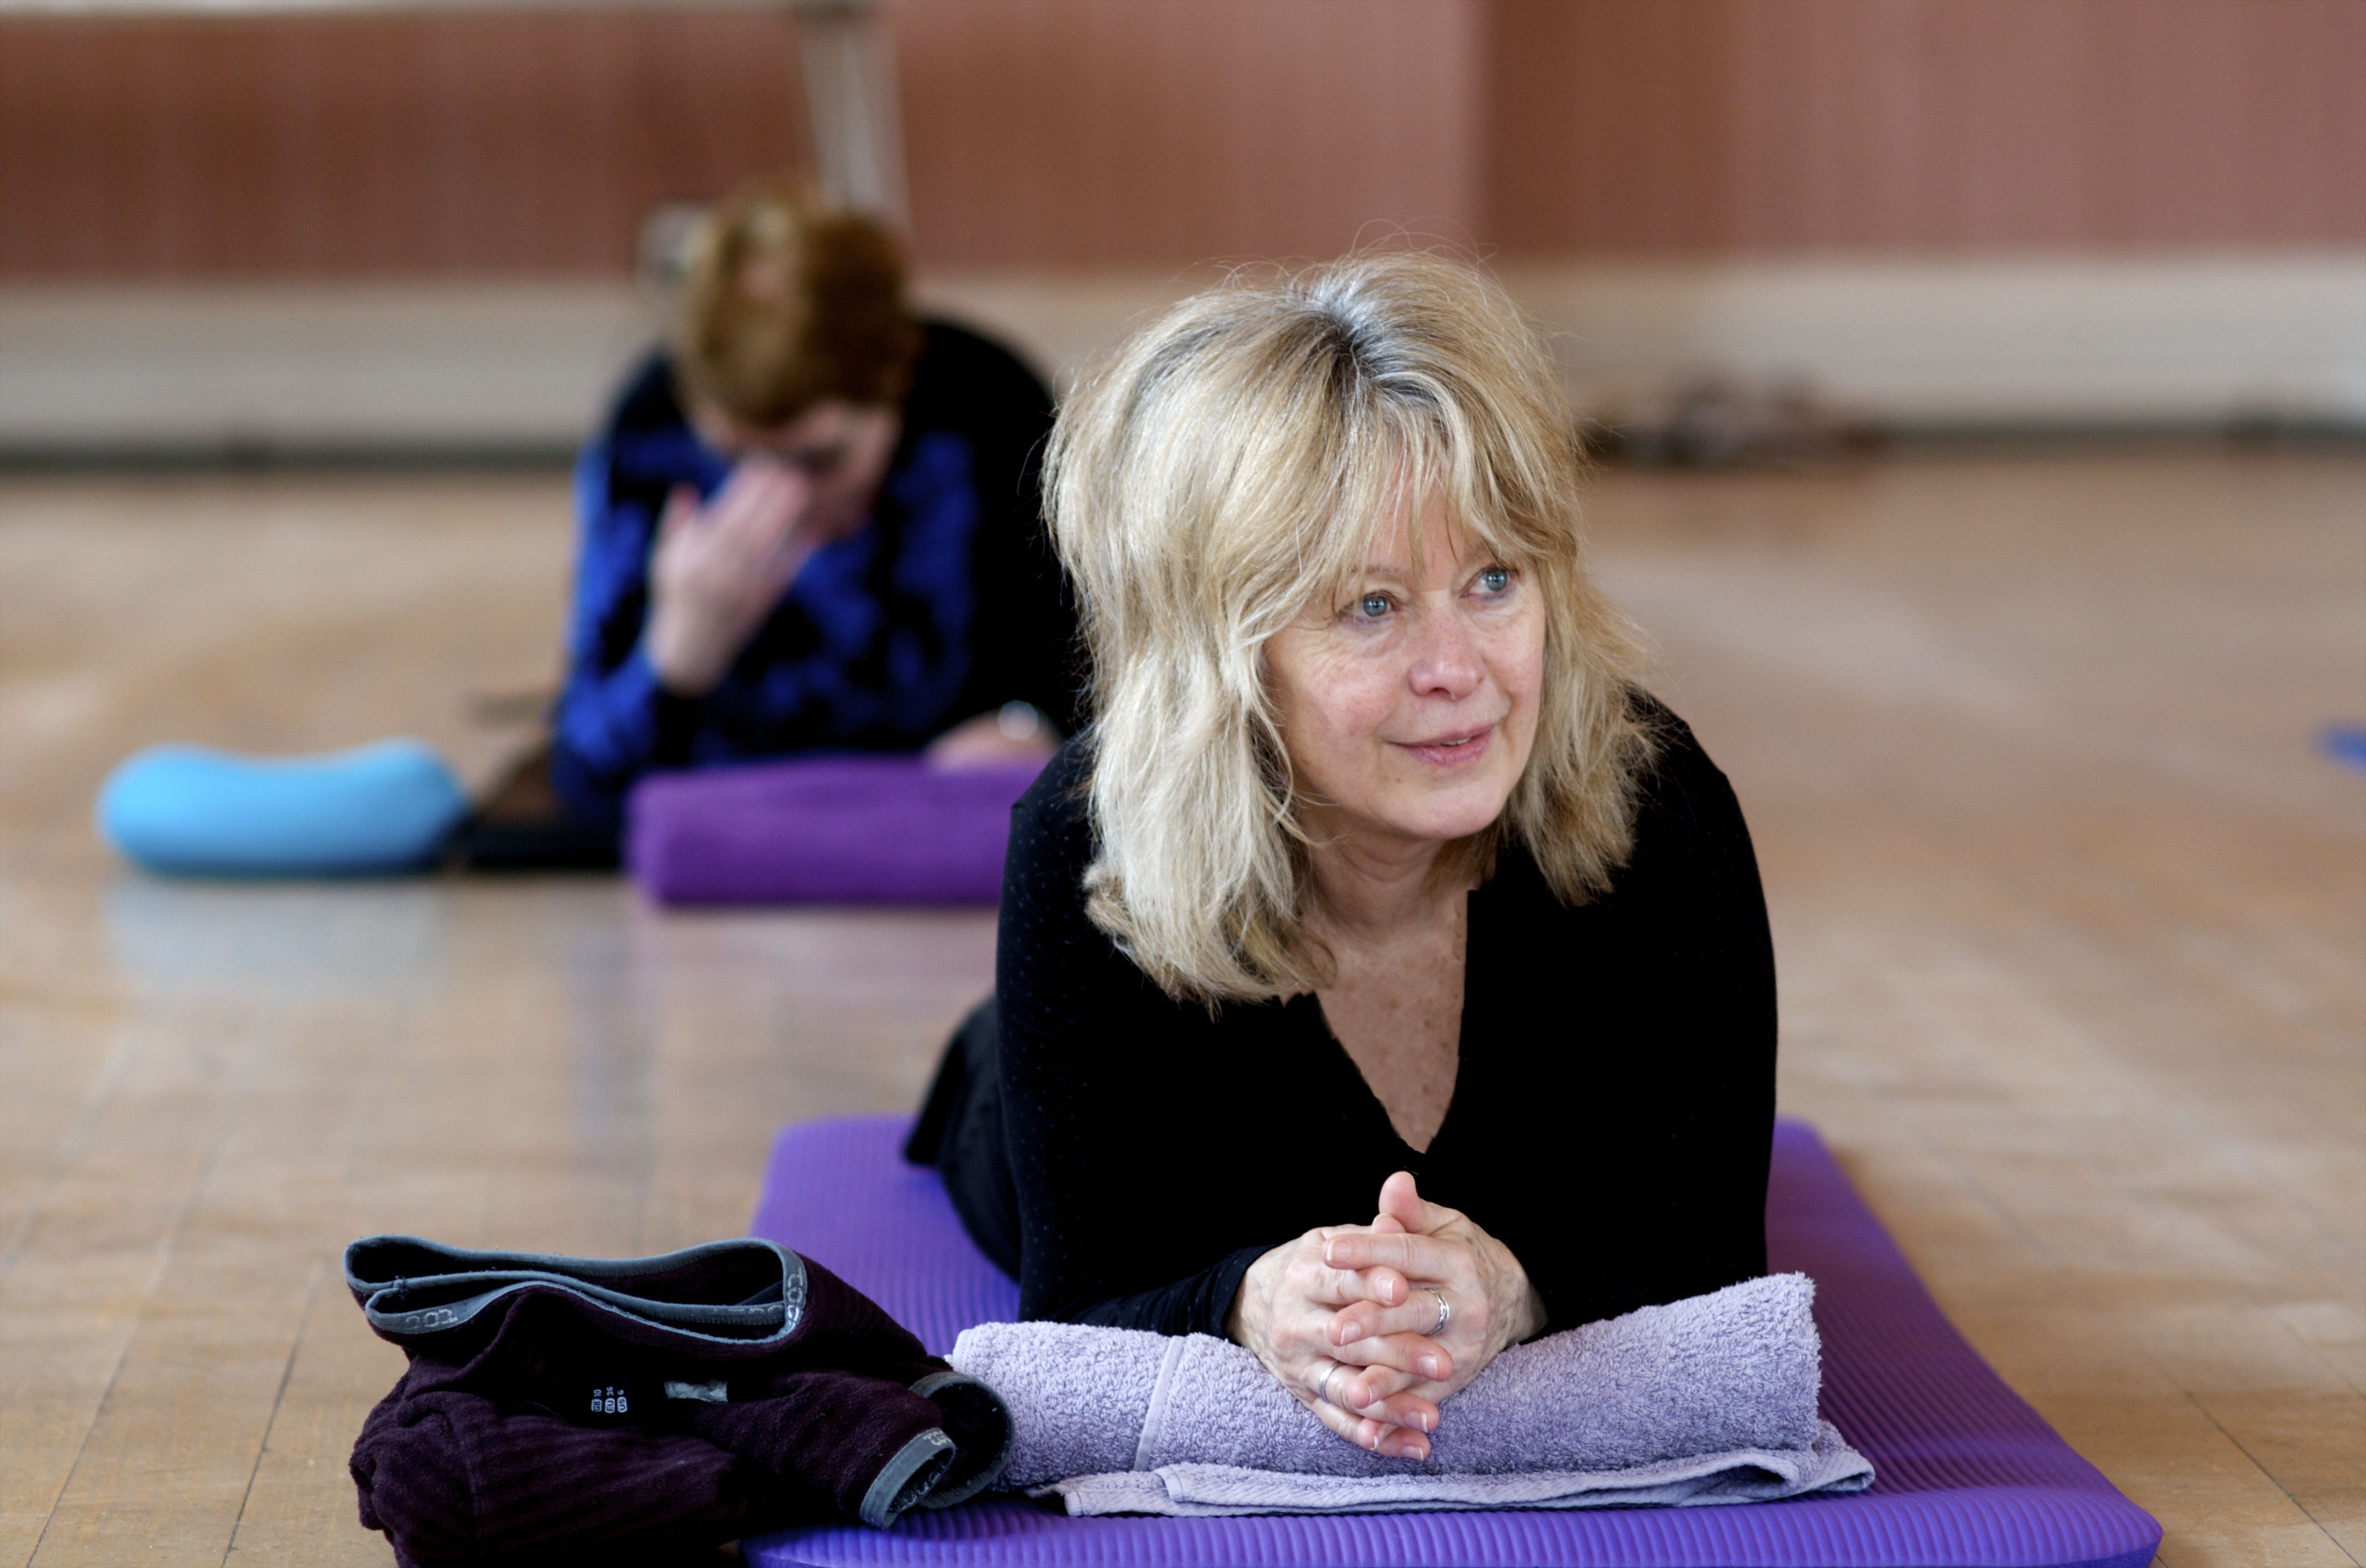 Part-time Pilates Courses at Shipley College #pilatescourses Part-time Pilates Courses at Shipley College #pilatescourses